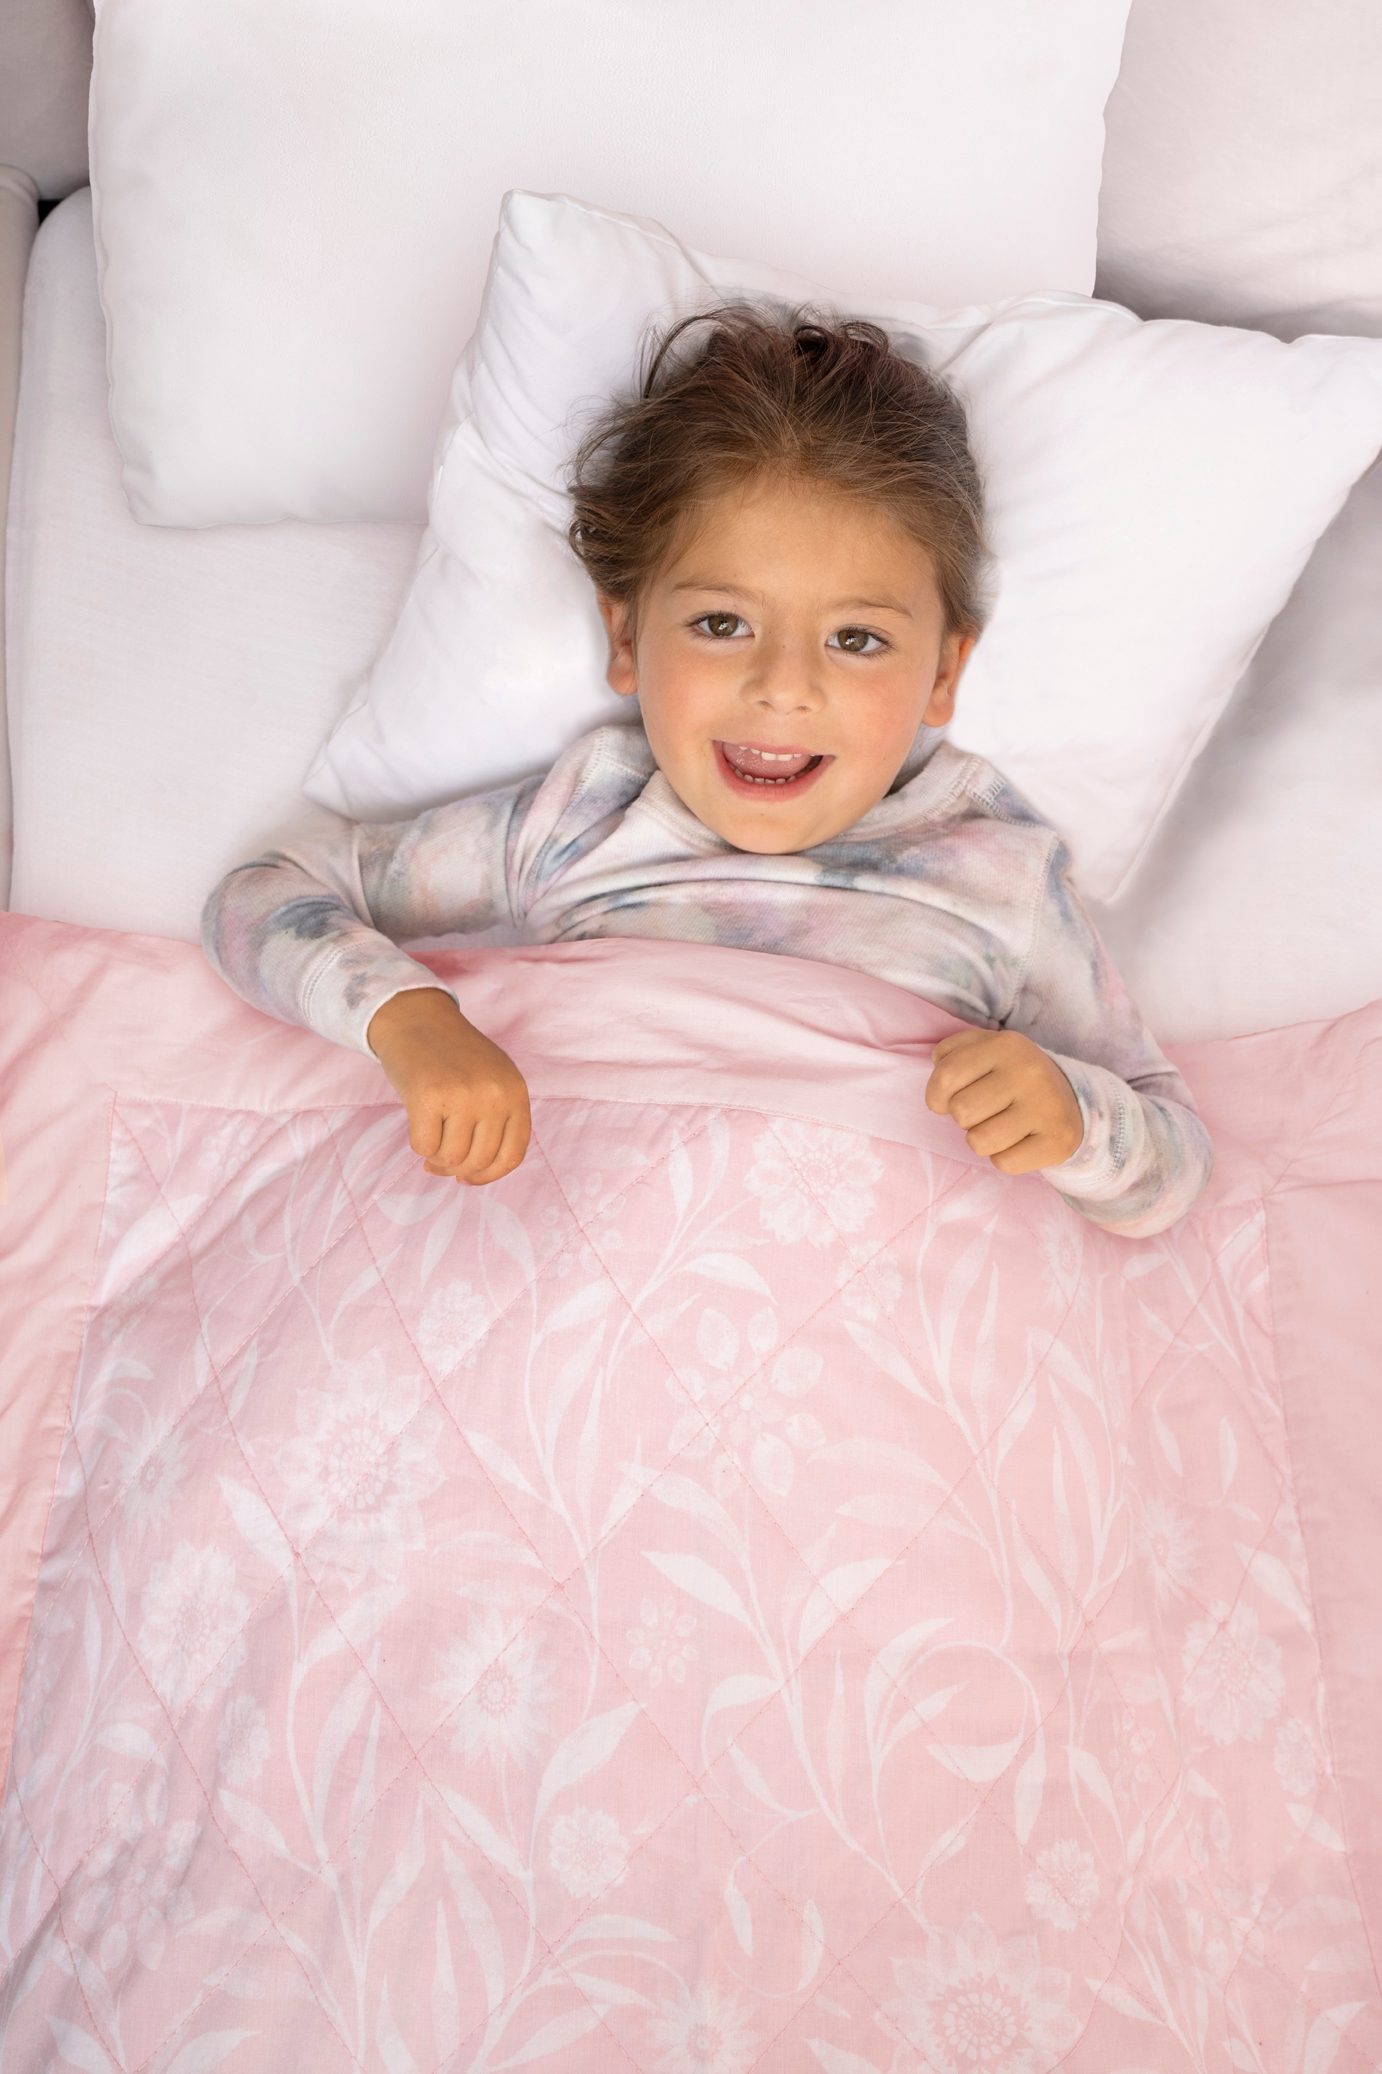 toddler girl in bed with ophelia toddler-bed weighted blanket 2.65 lbs